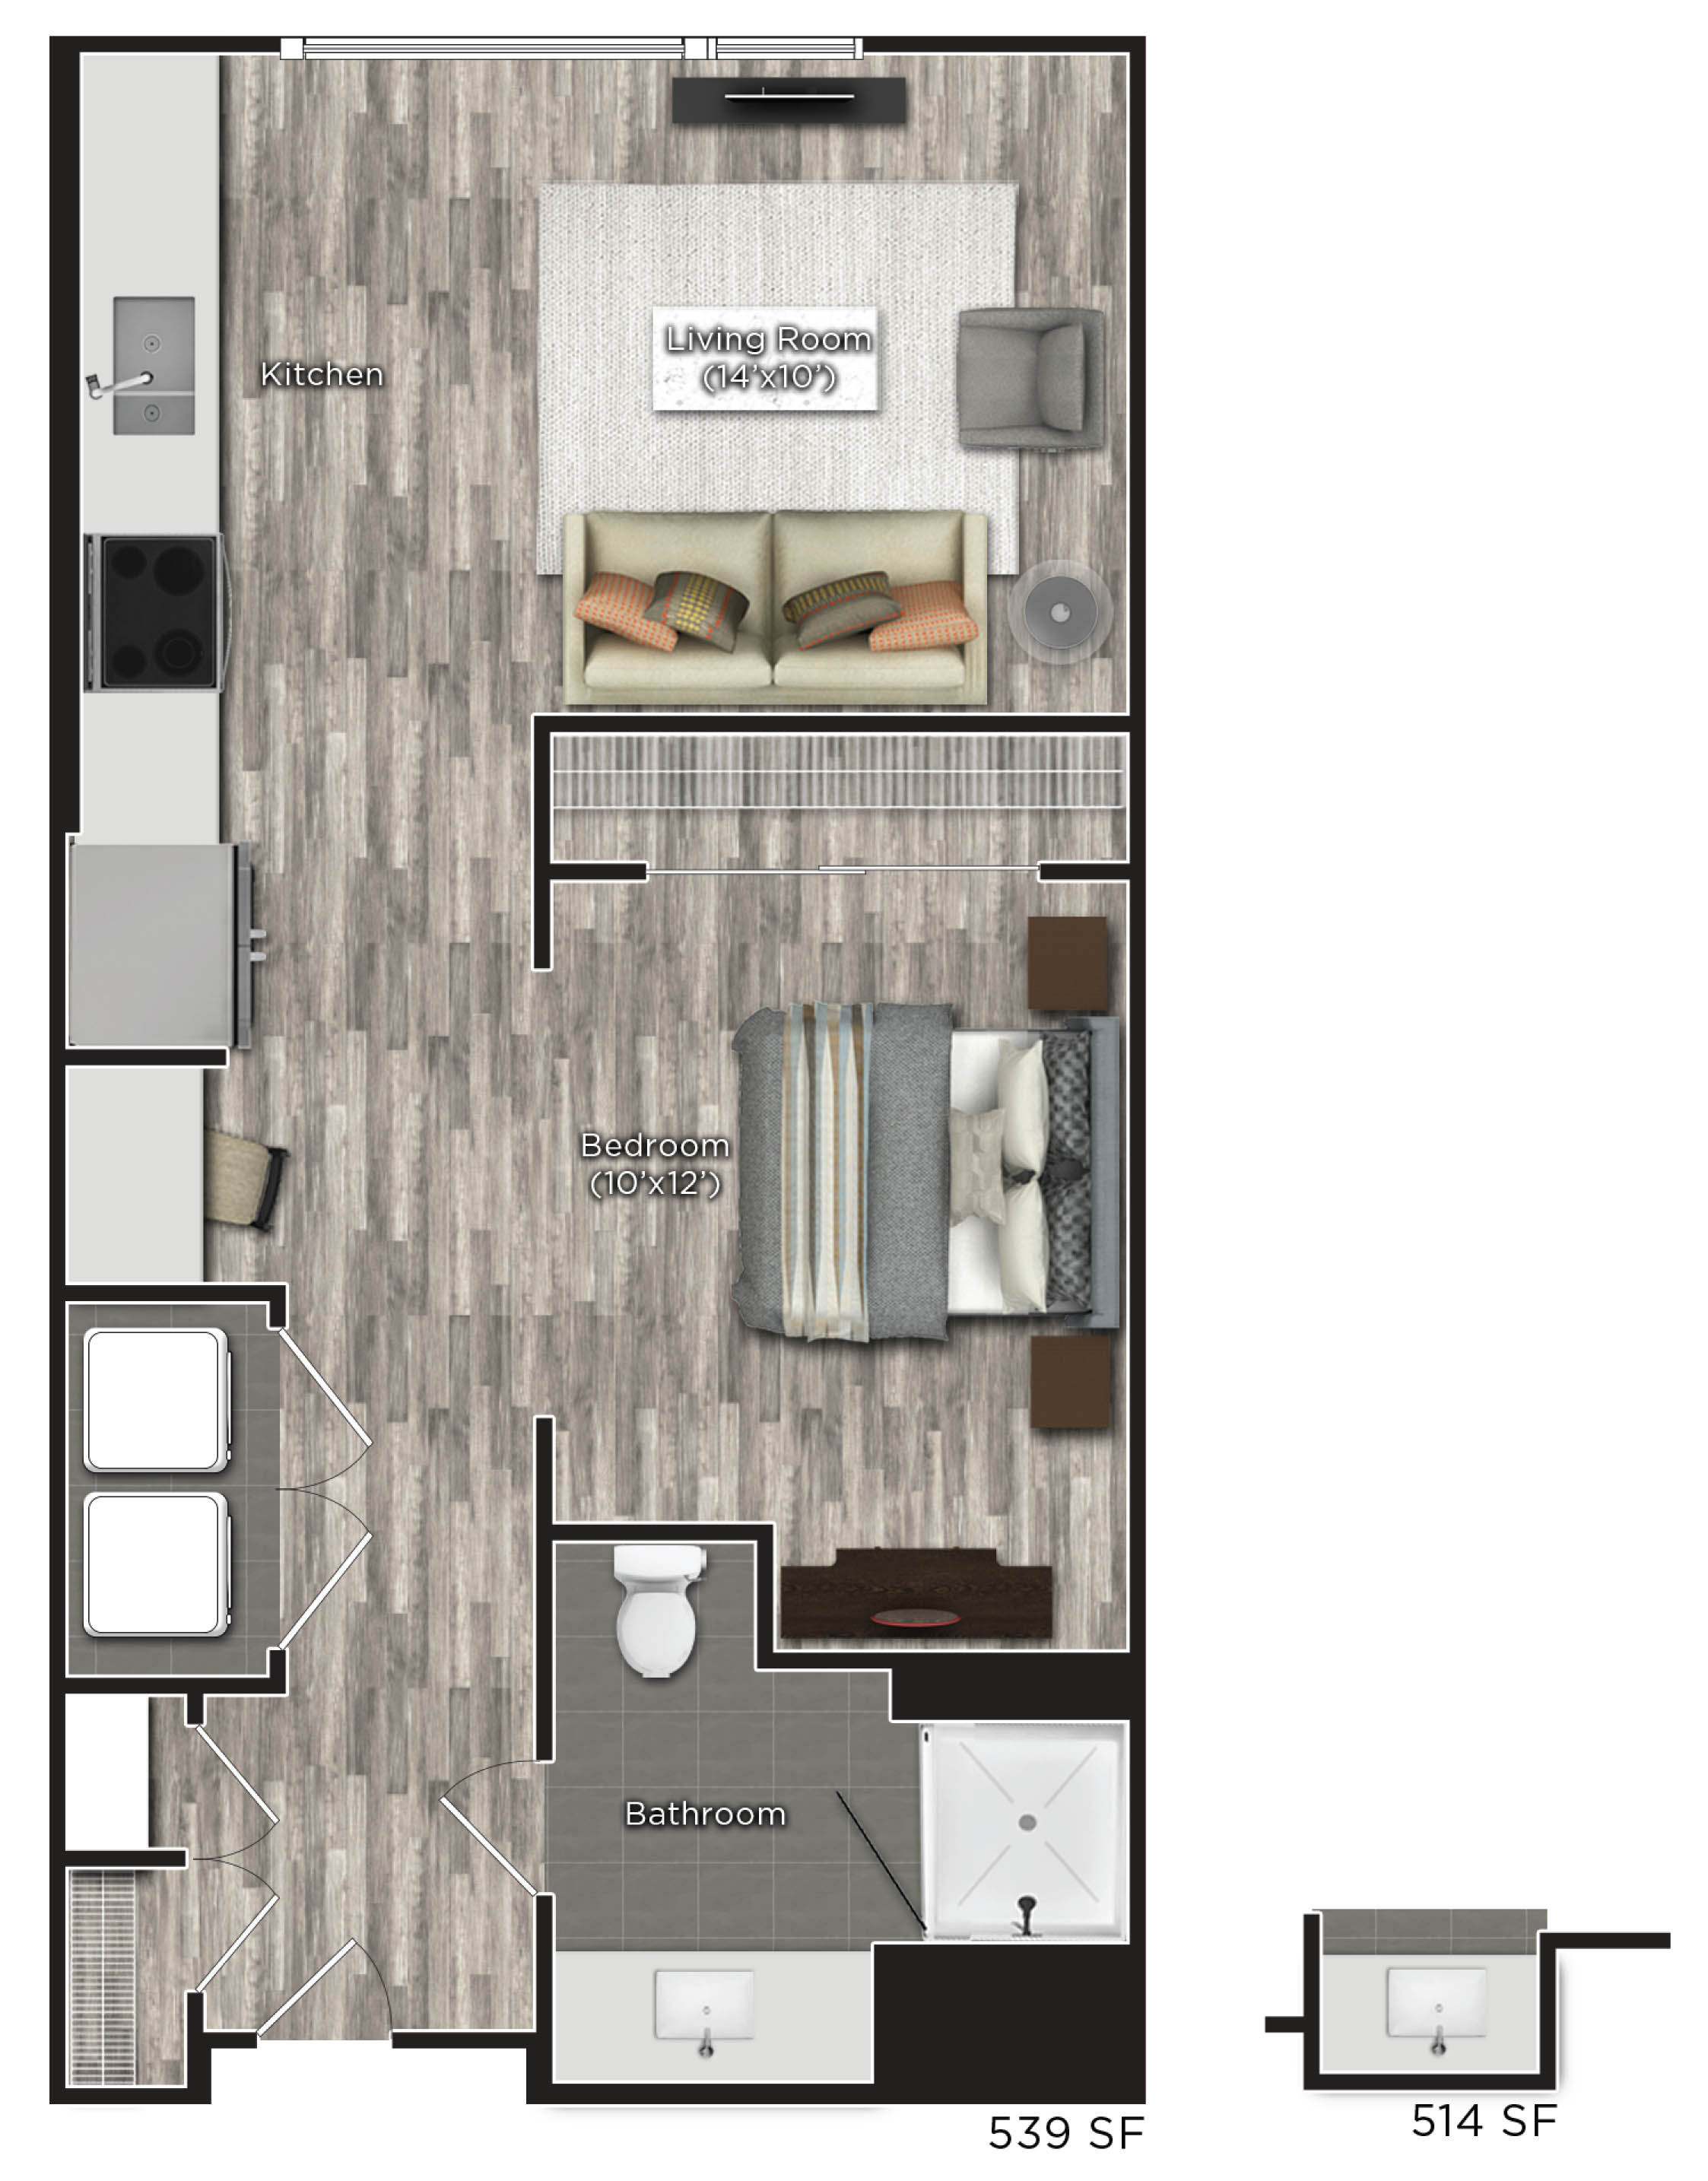 Tens on West - Floorplan - A - Studio